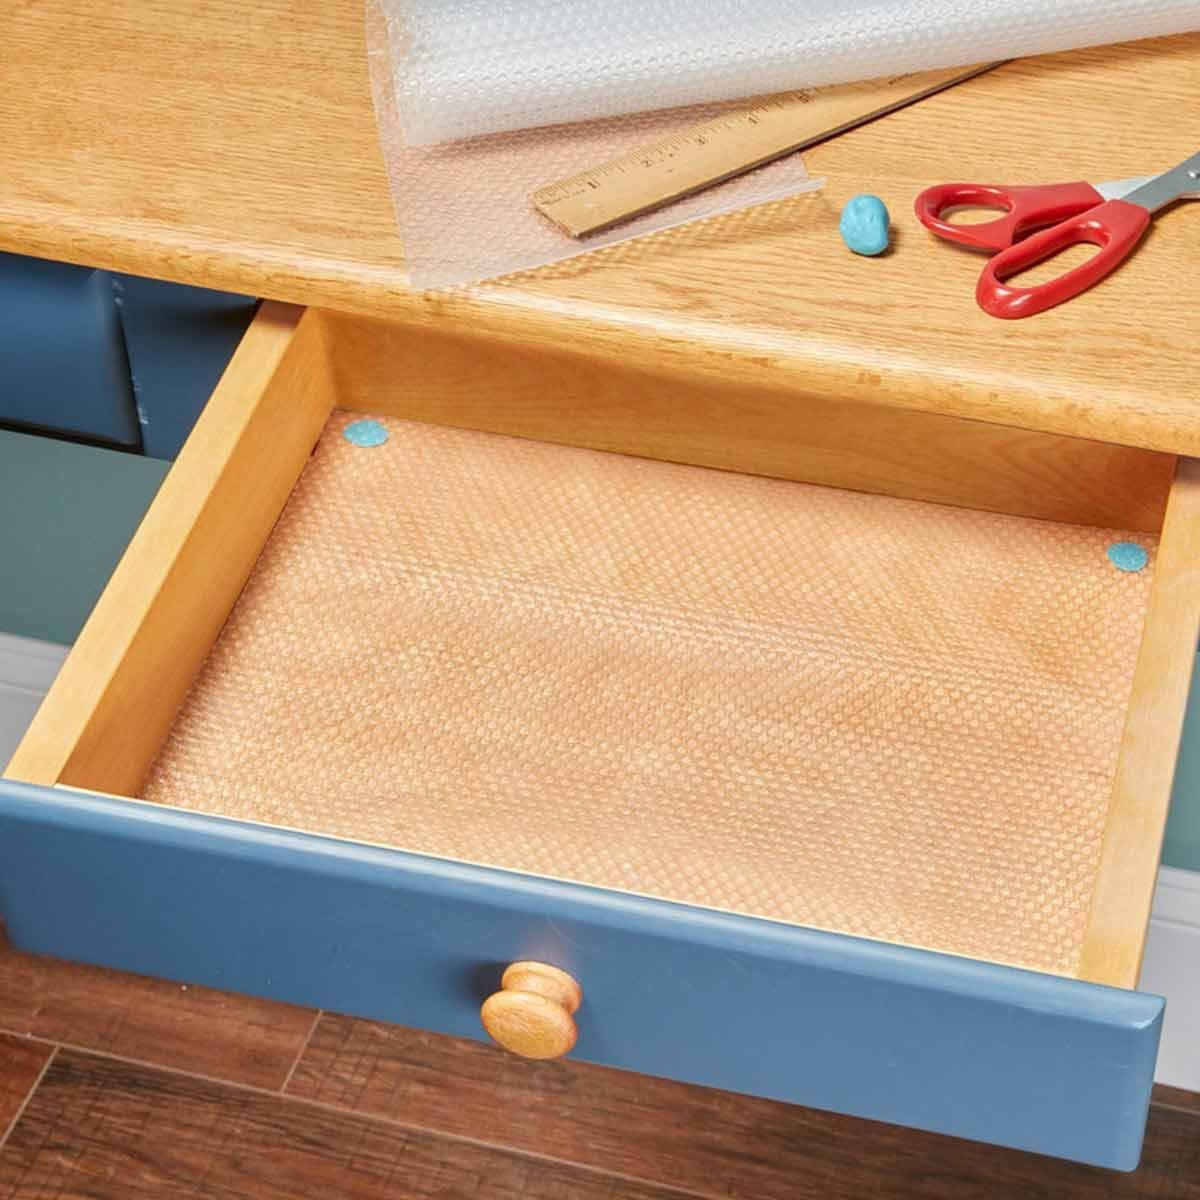 Line Drawers And Cabinets With Shelf Liners